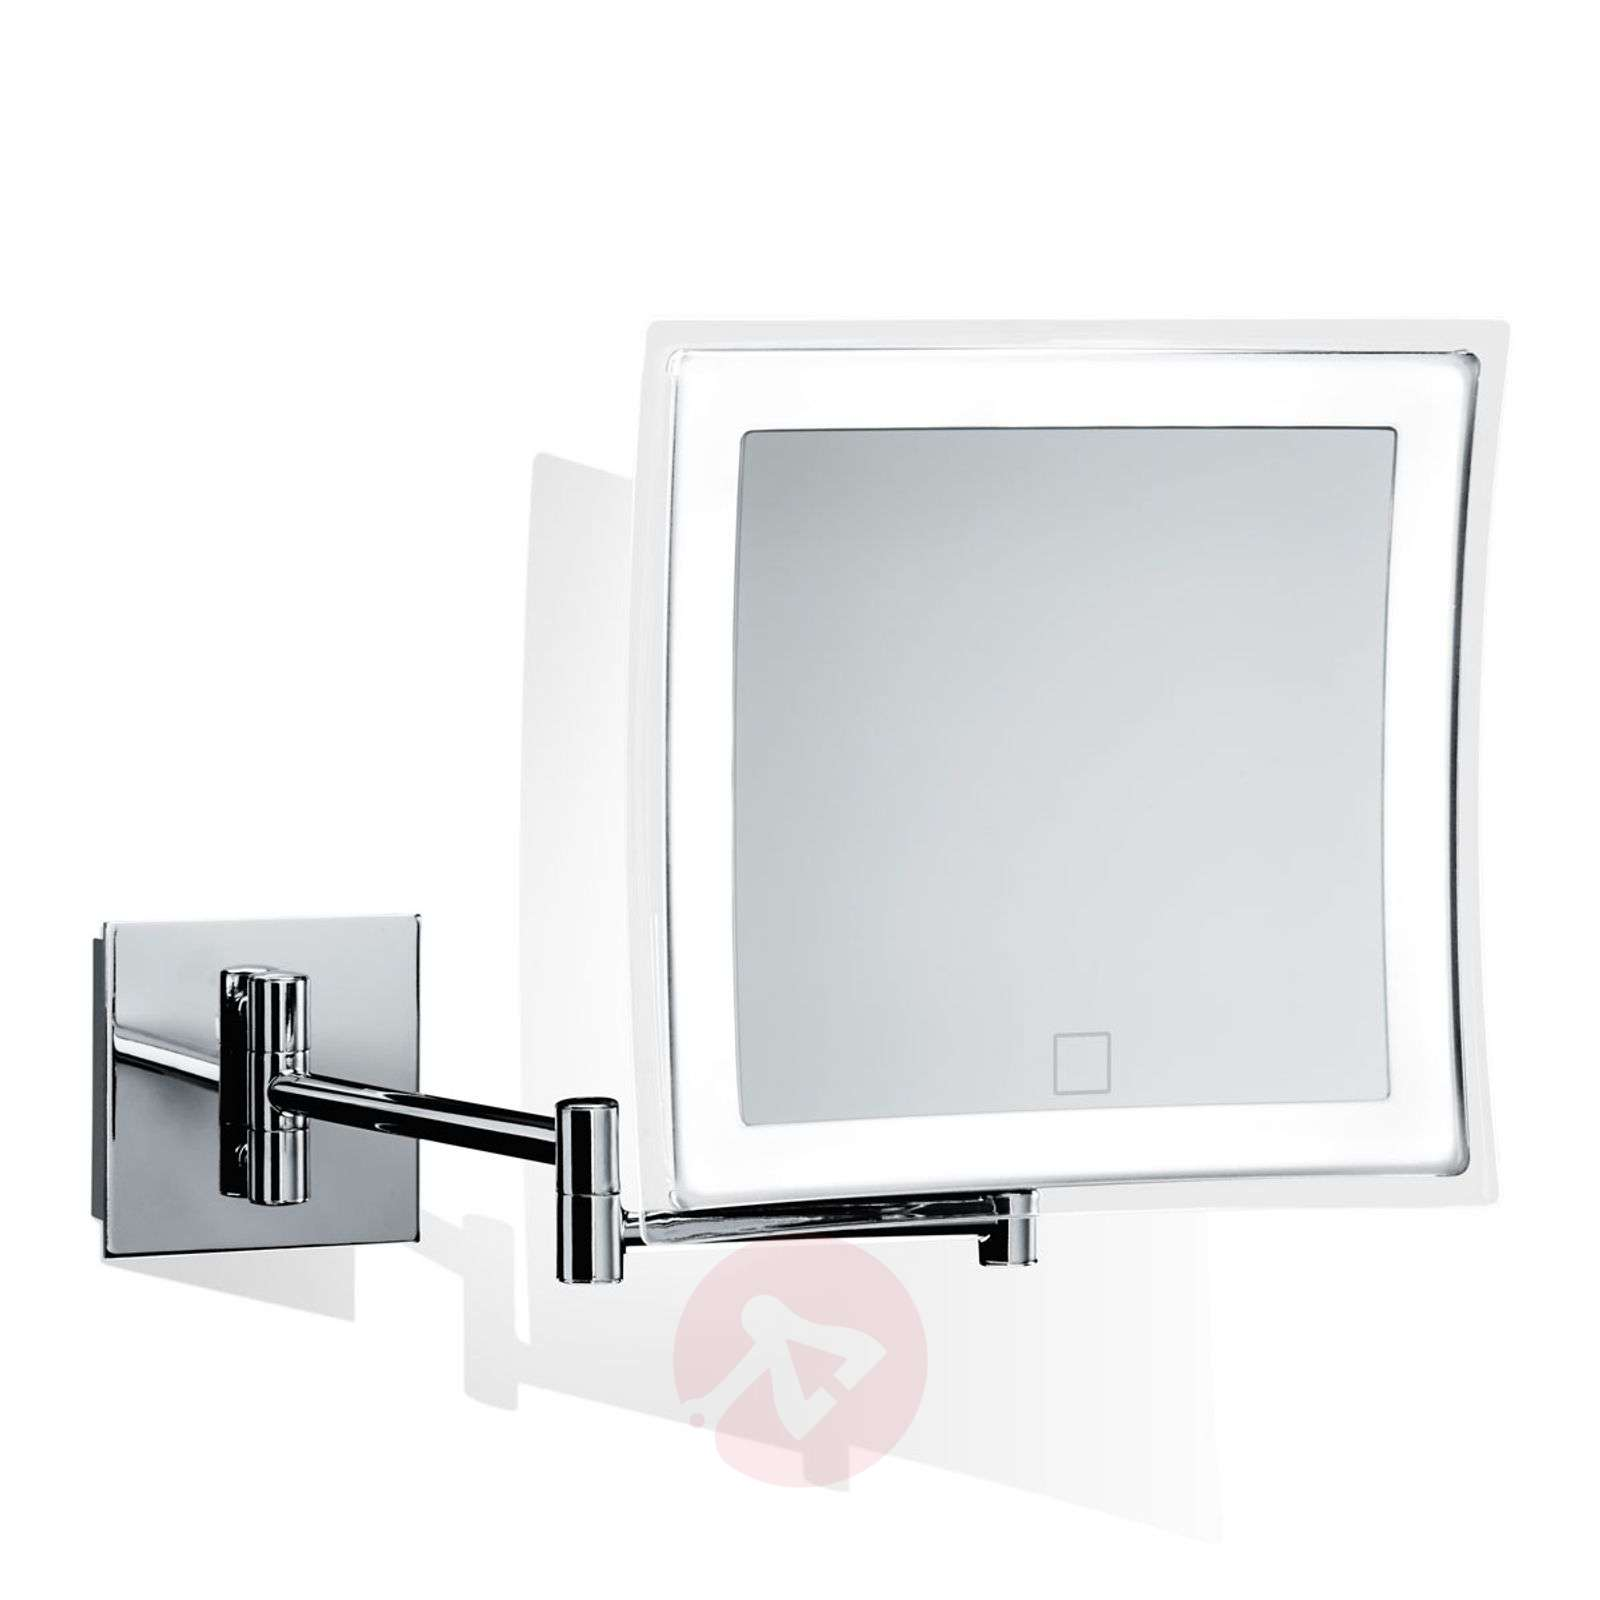 Decor Walther BS 85 Touch LED-wandspiegel vierkant-2504973-01